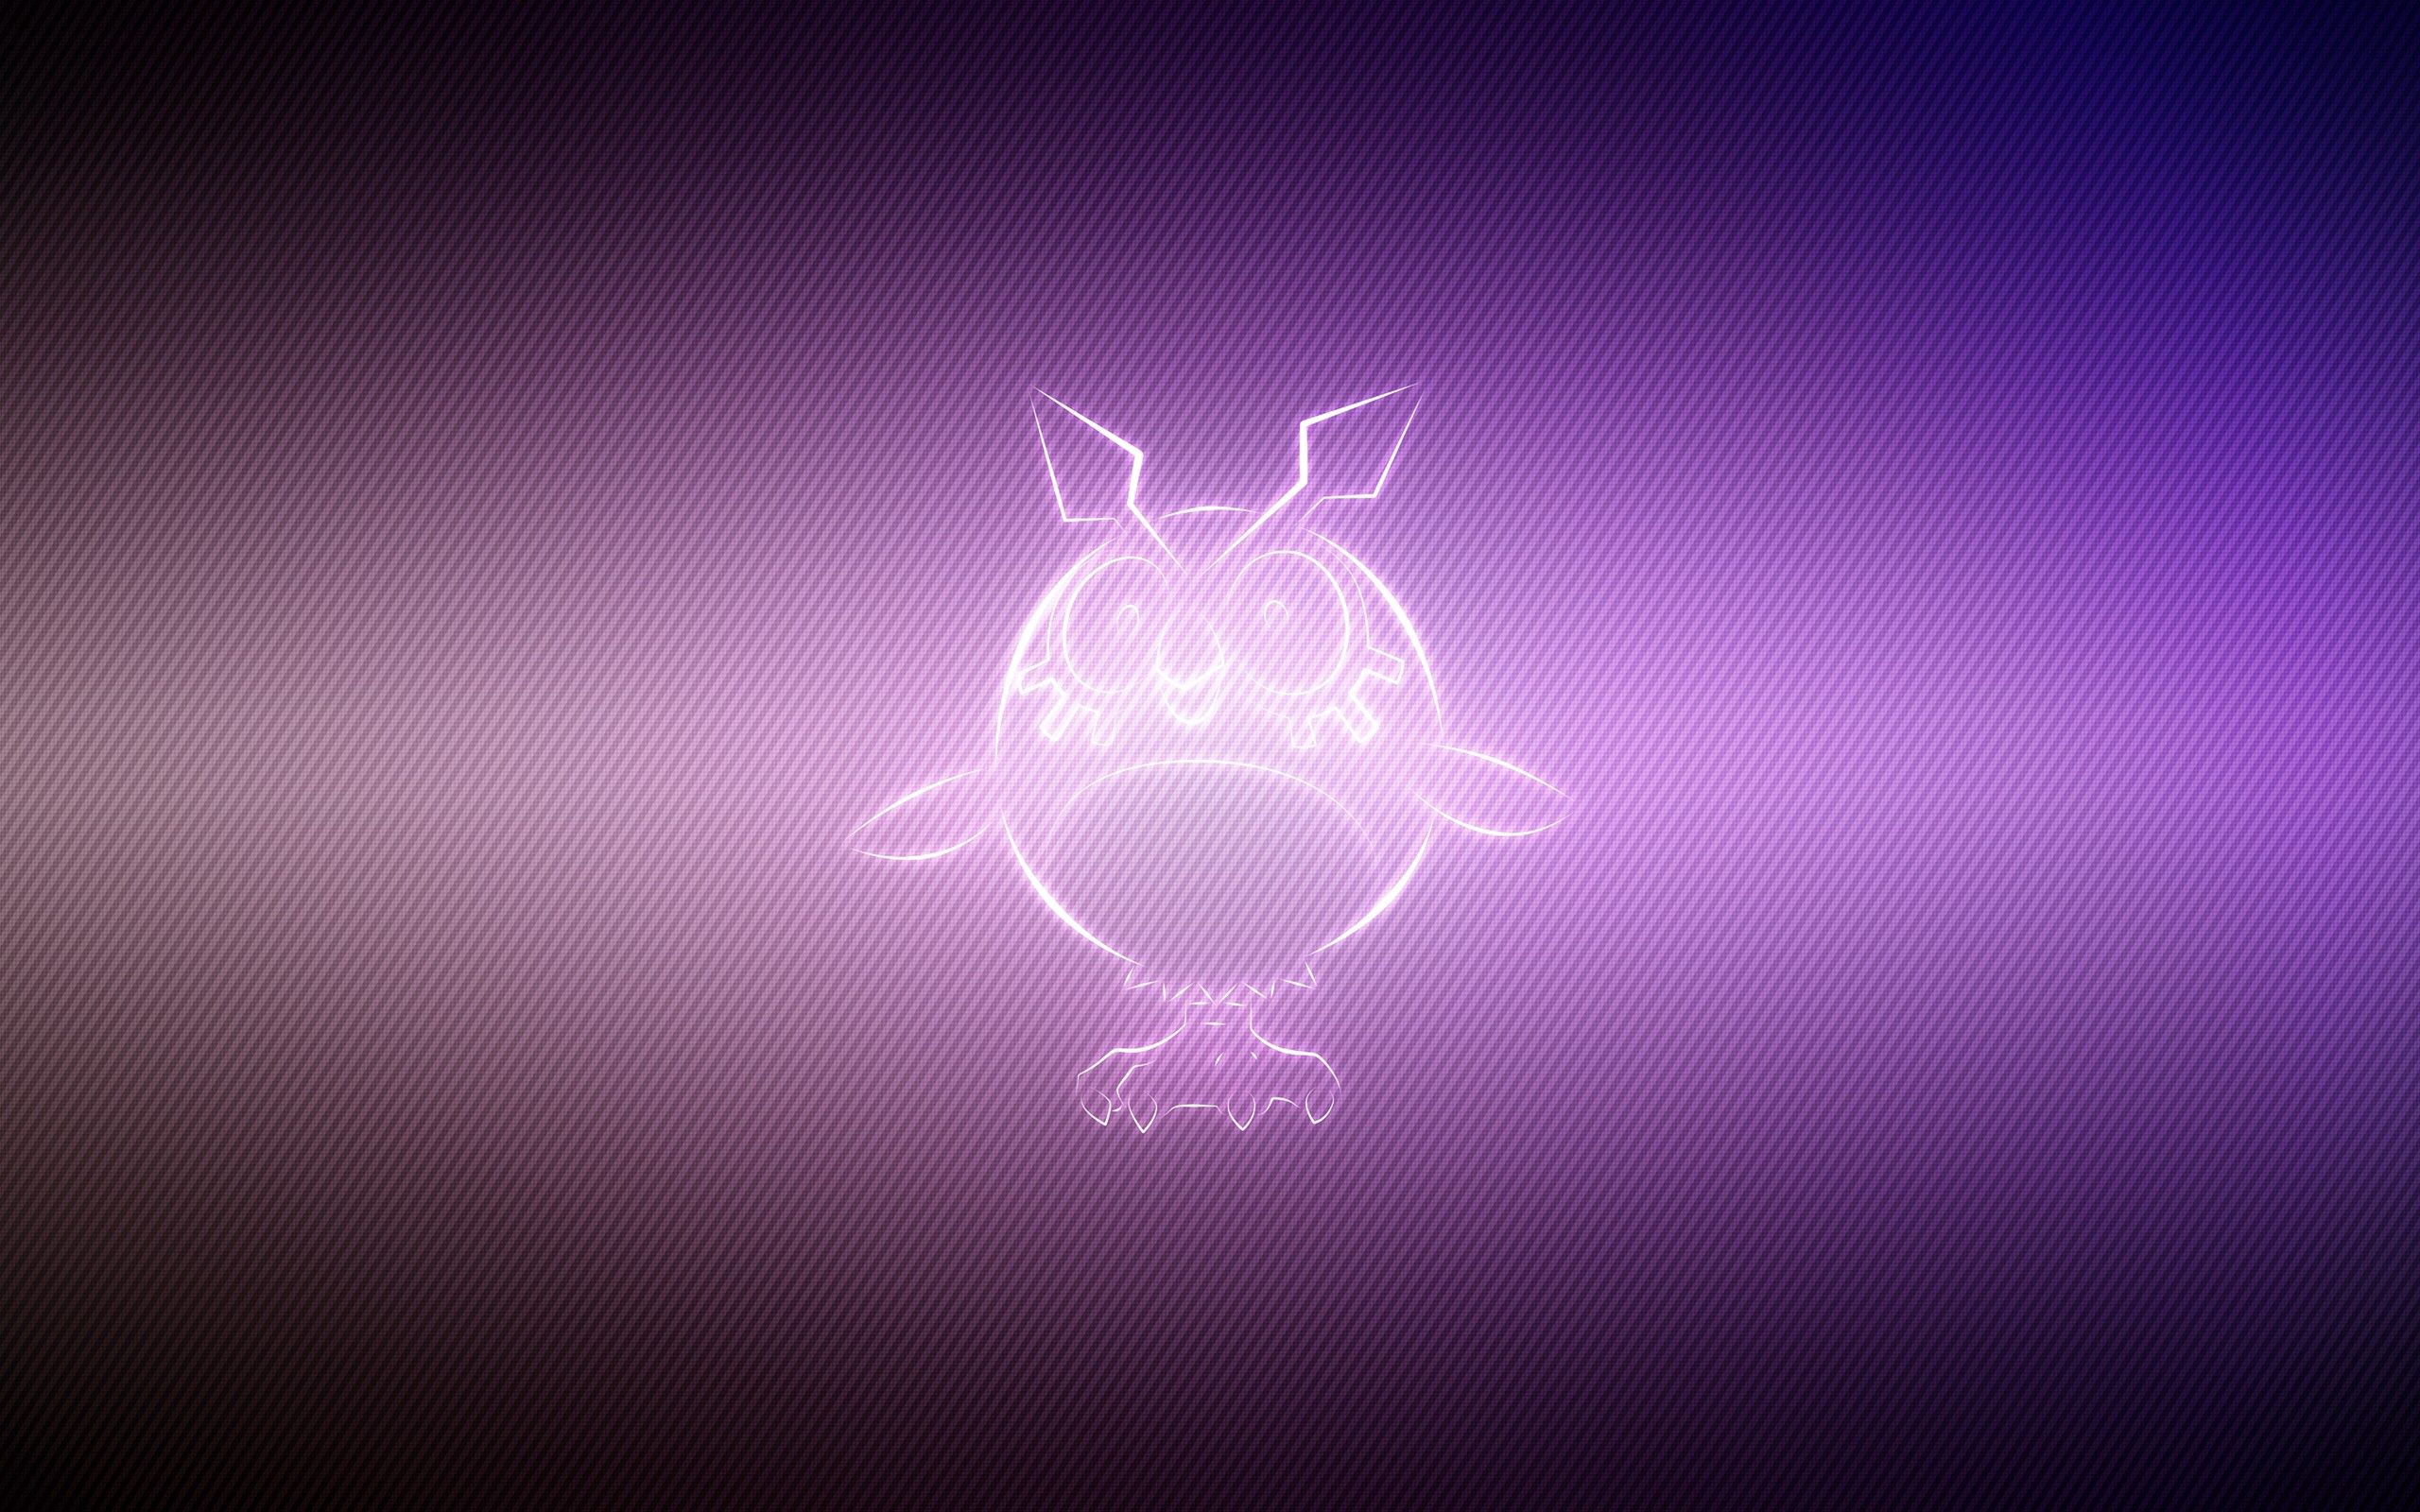 83413 download wallpaper Vector, Hoothoot, Pokemon, Pokémon, Animal screensavers and pictures for free